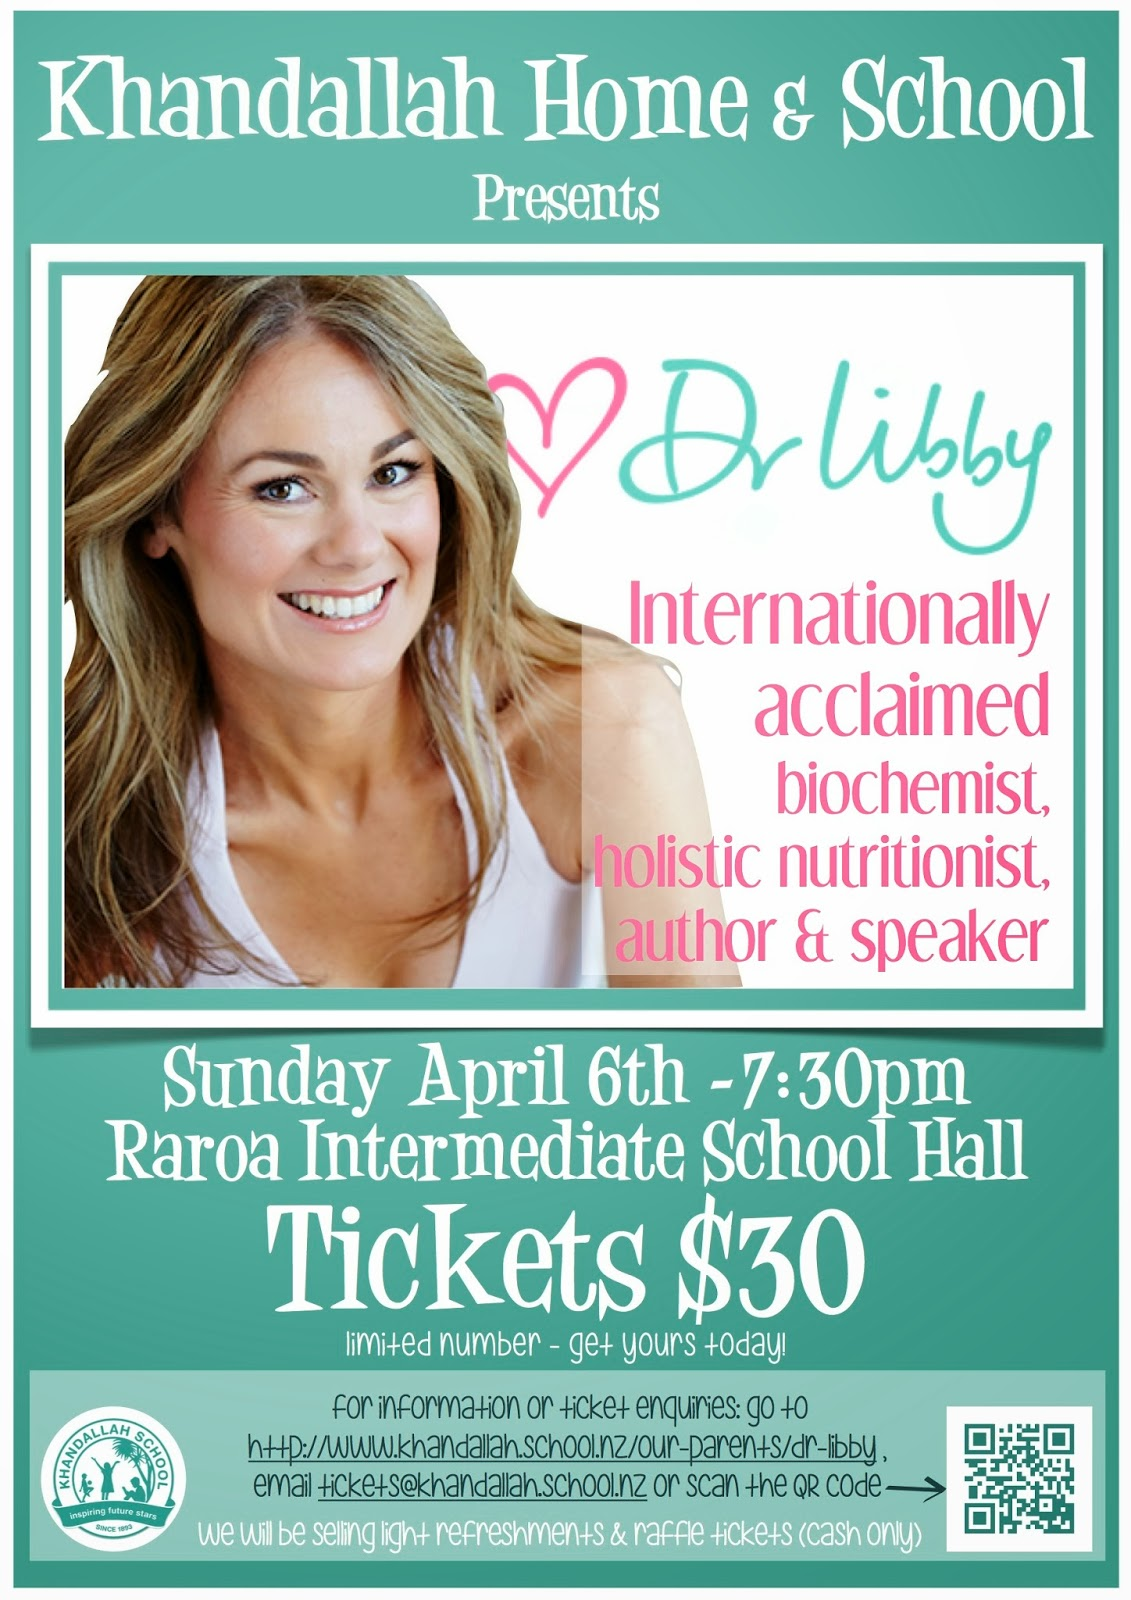 Amesbury school khandallah home school association is proud to bring internationally acclaimed biochemist holistic nutritionist author and speaker dr libby to fandeluxe Choice Image